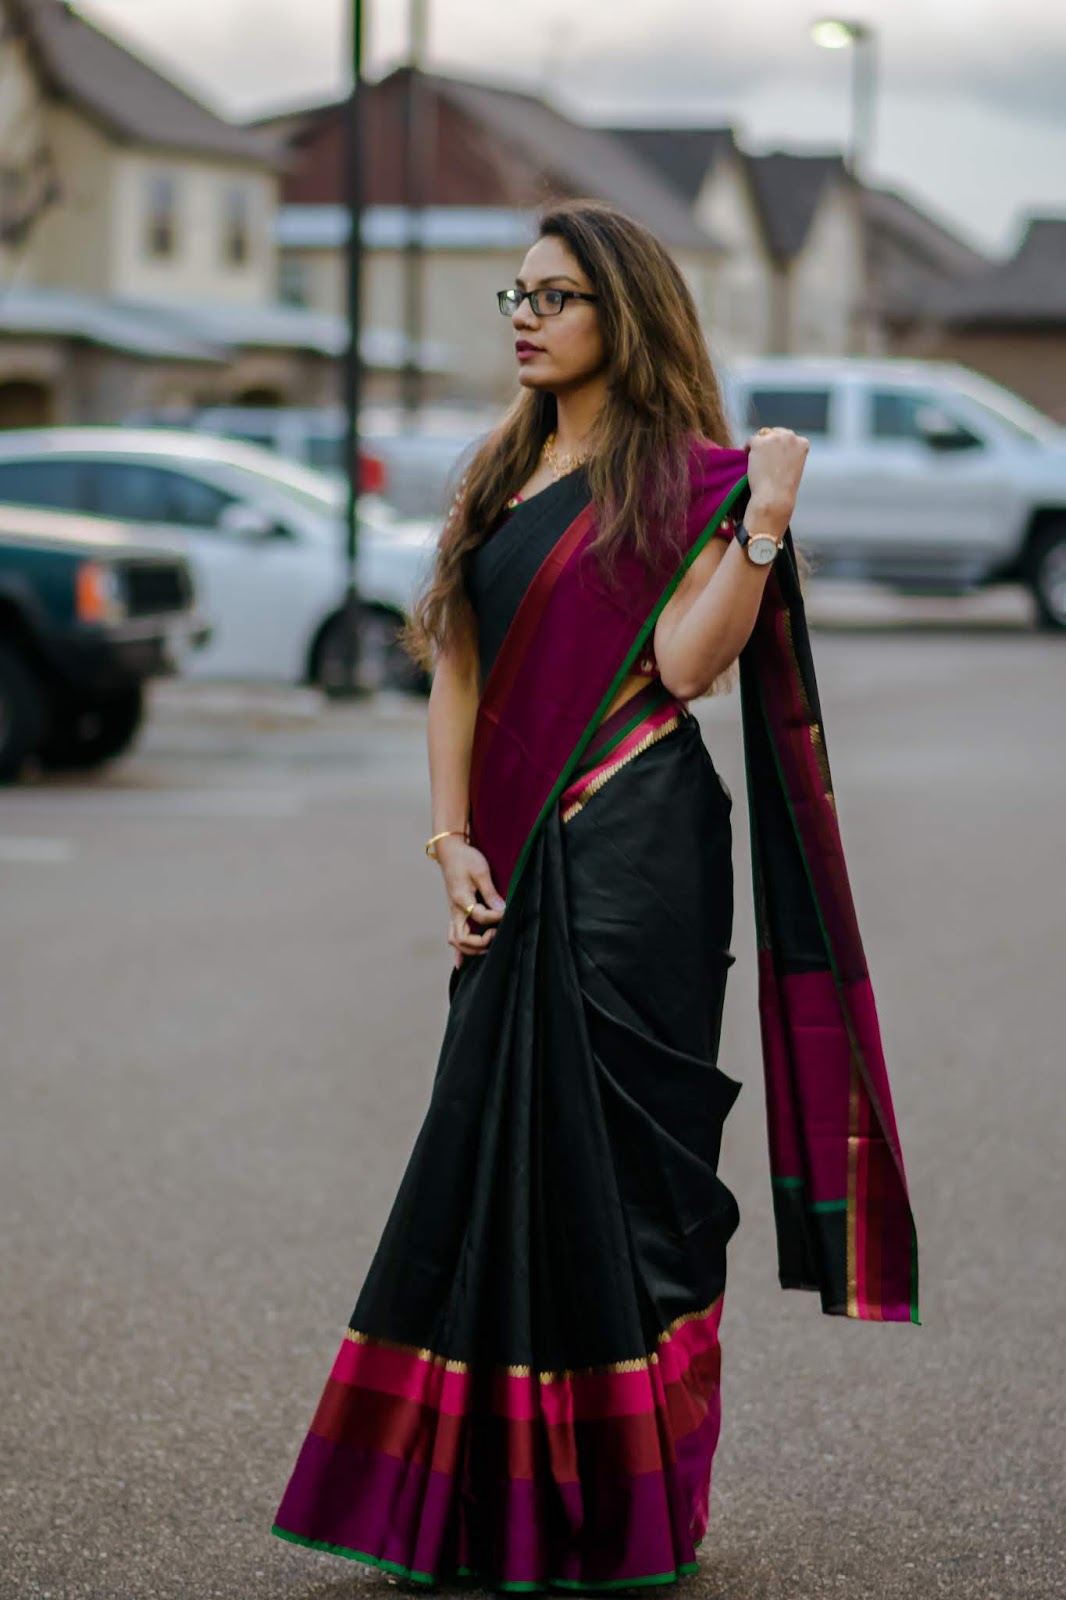 My Eternal Love for Saree - Diwali 2018; Aim for Glam; Indian Jewelry;Prasanthi Kadiyala;Saree Love; Diwali; Indian Fashion blogger; South Indian Fashion blogger; South Indian; Saree Lover;